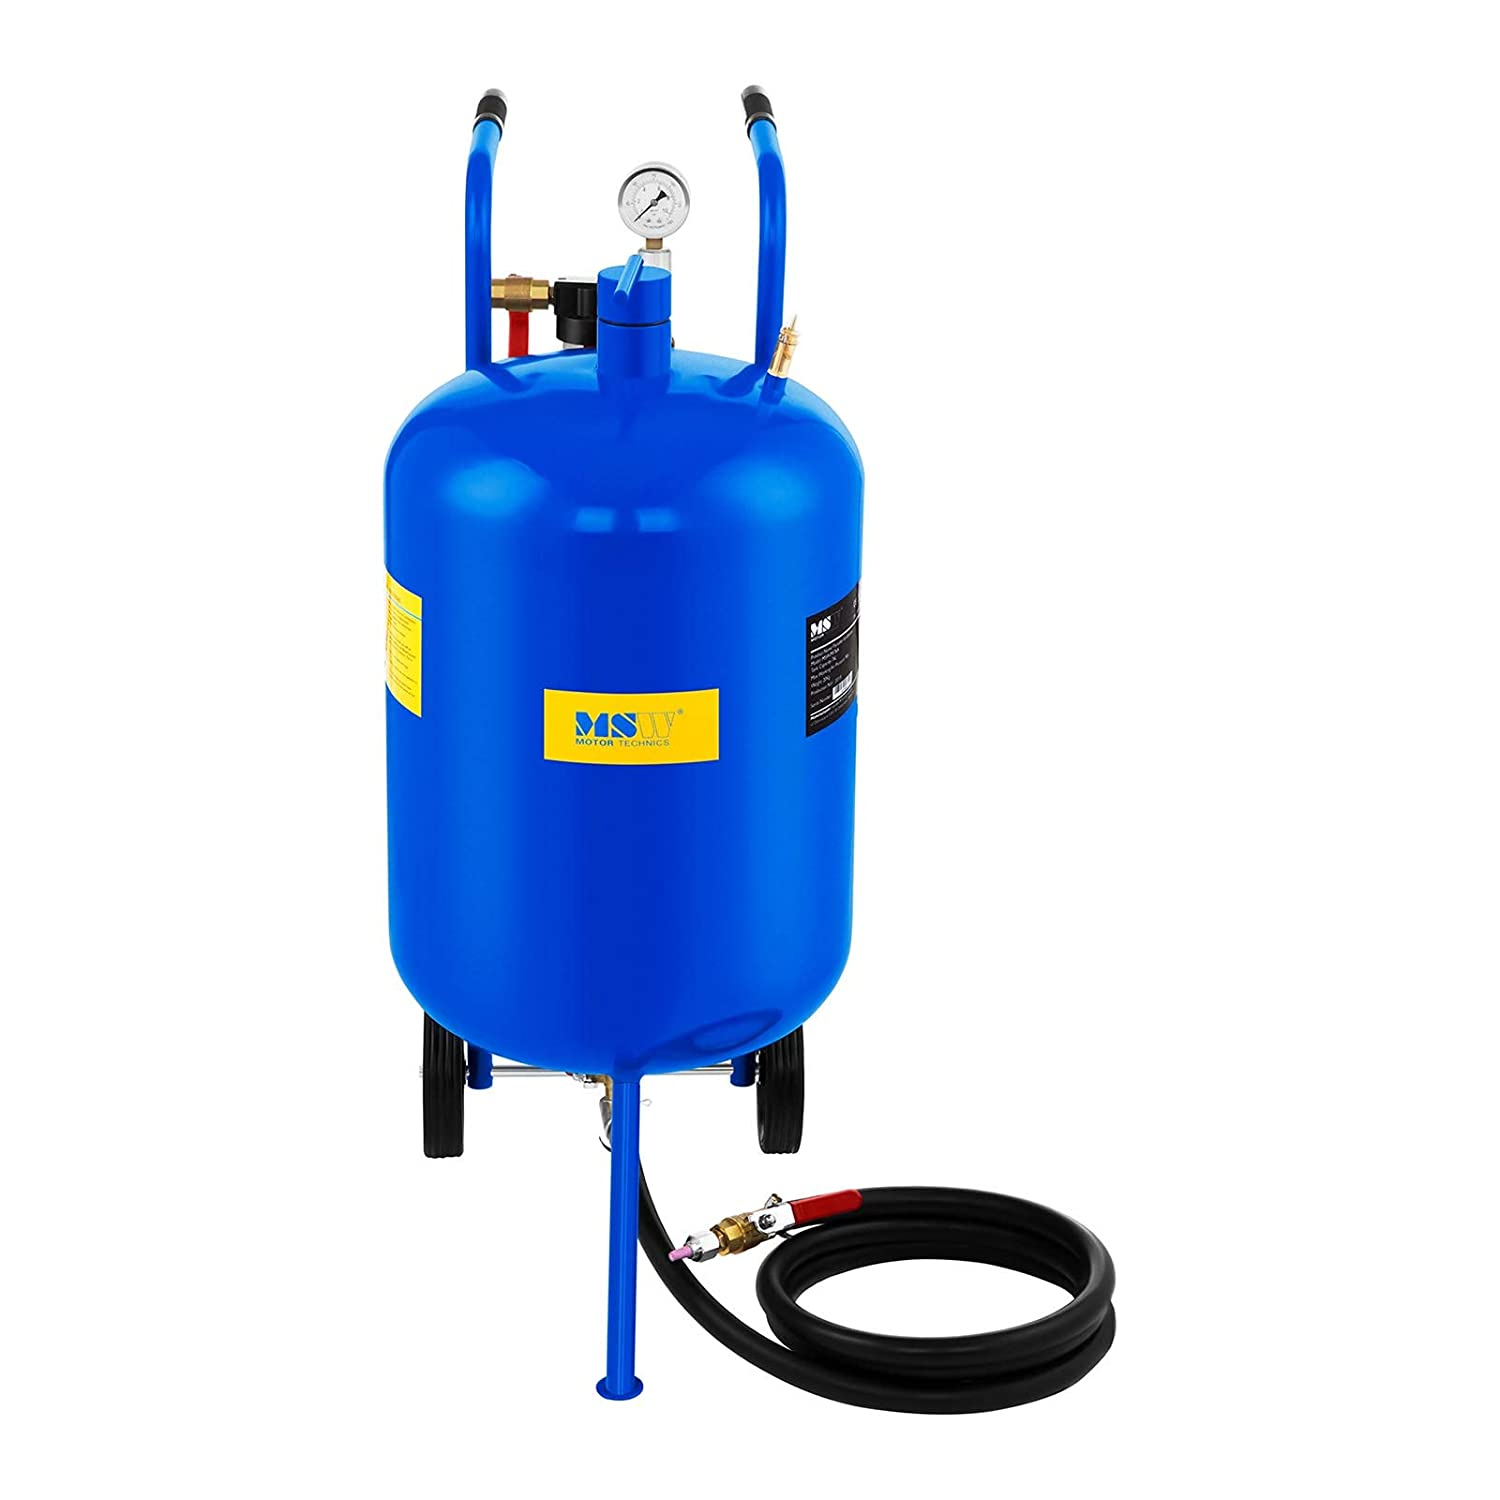 MSW Portable Sandblaster MSW-MS76A 76 L, Max. Working Pressure: 9 bar, 2.5 m Working Hose, Integrated Wheels, 4 nozzles